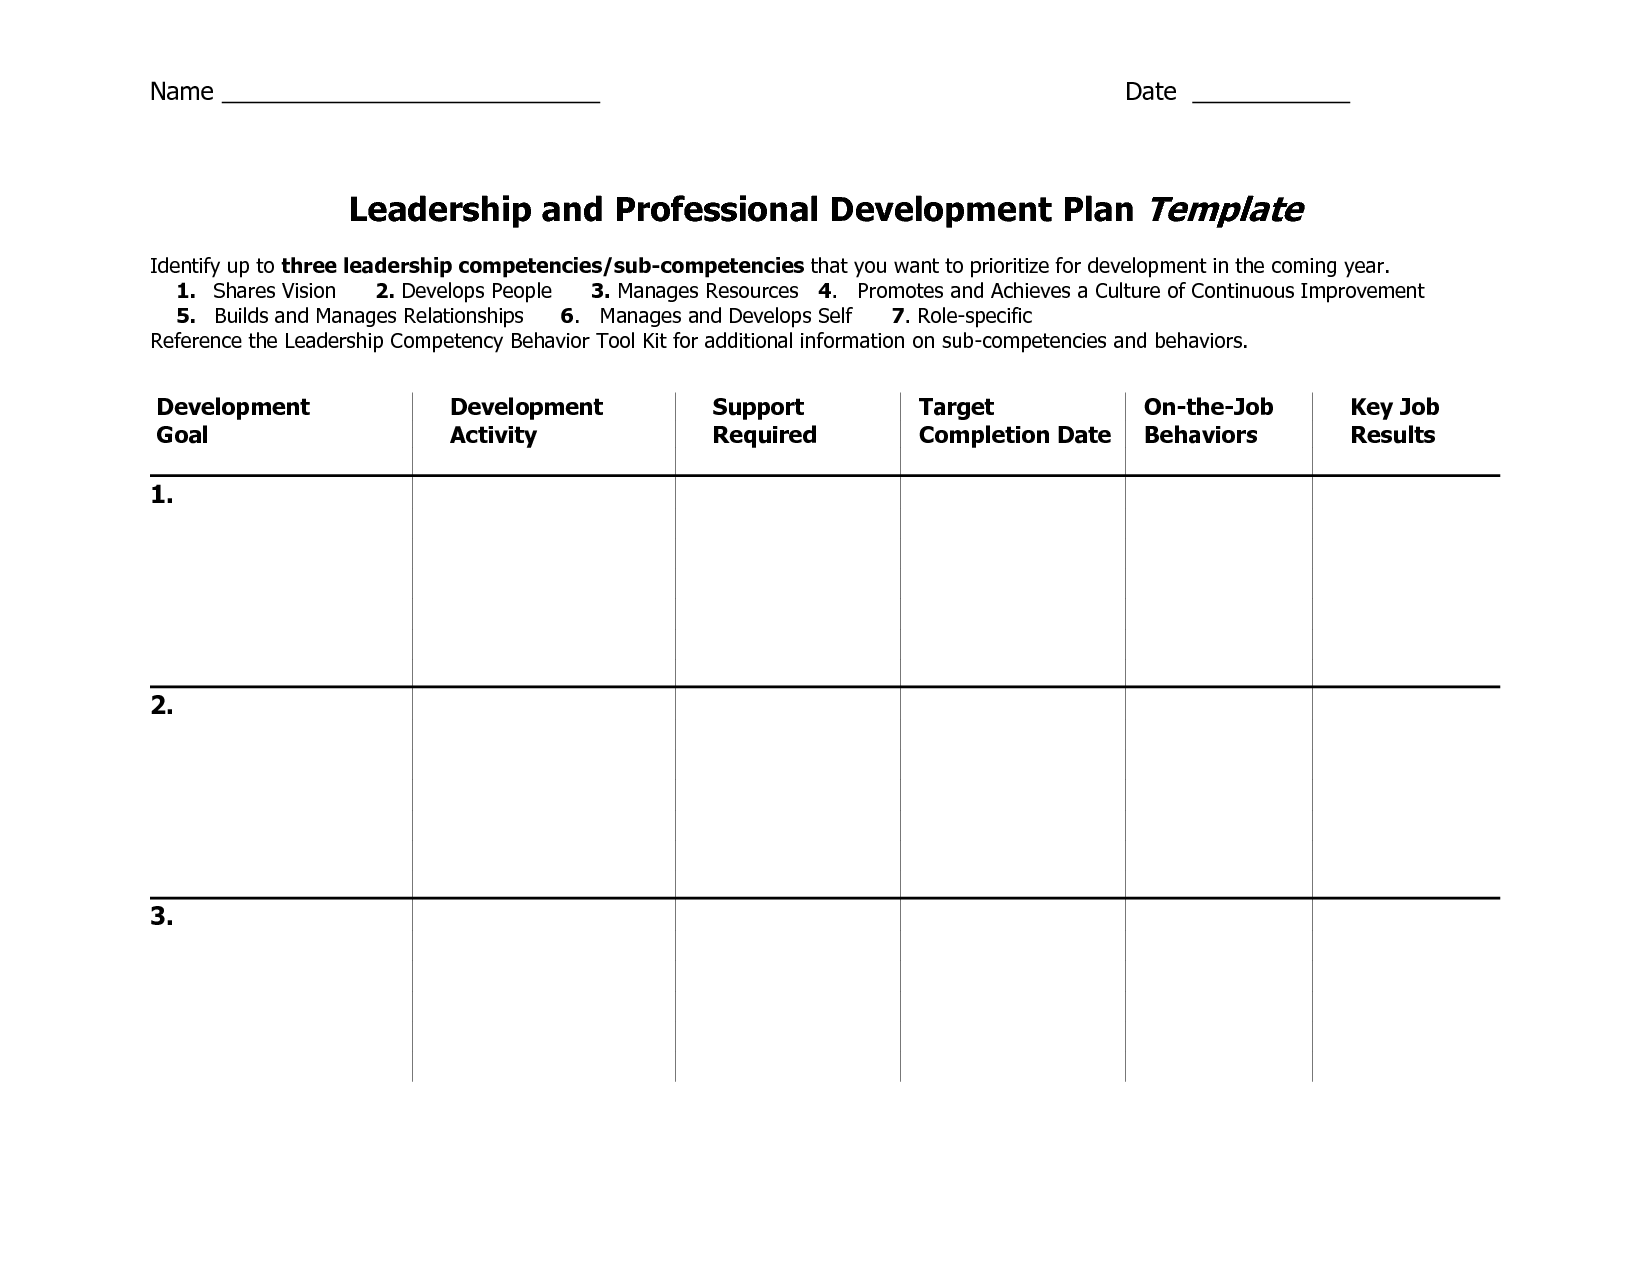 5 year career development plan template - individual development plan template word google search